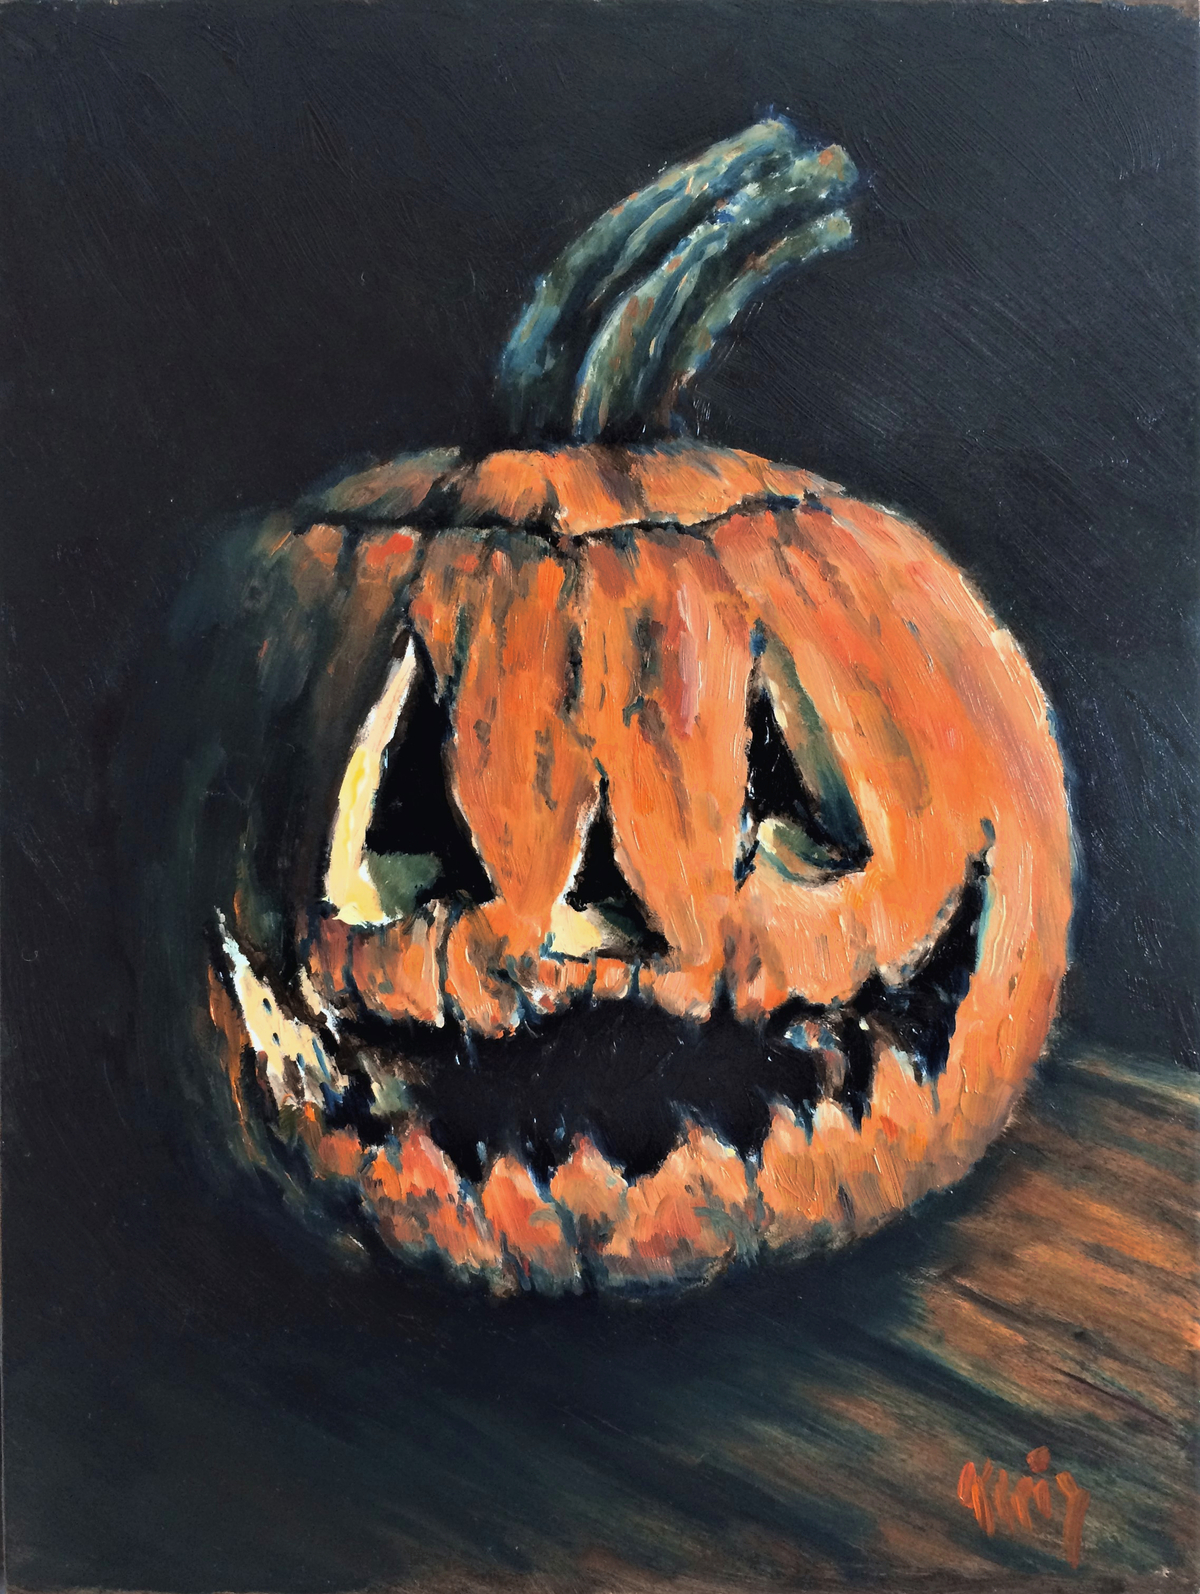 Portrait of a Rotting Jack-O-Lantern.jpg